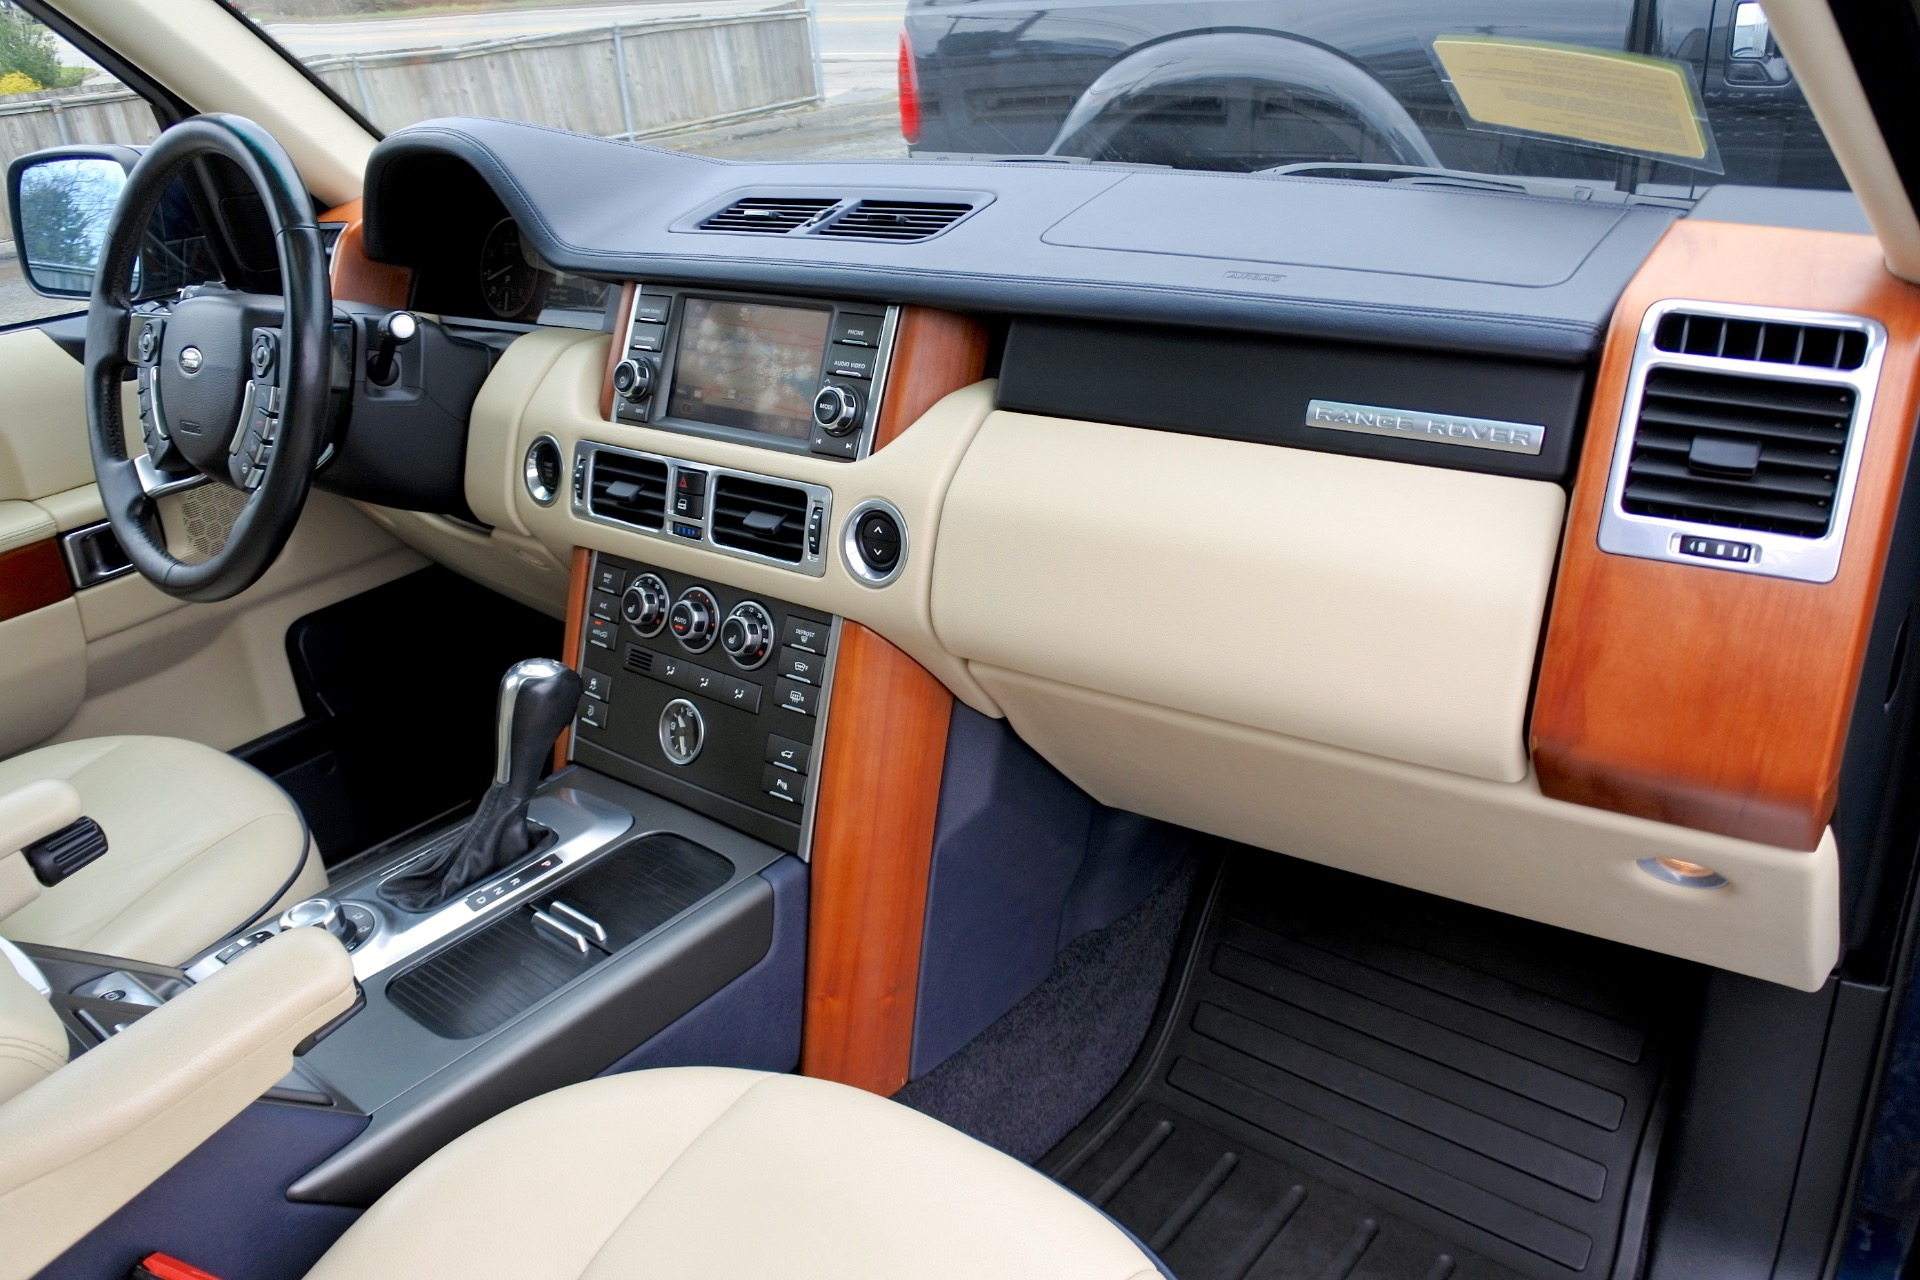 Used 2011 Land Rover Range Rover HSE Used 2011 Land Rover Range Rover HSE for sale  at Metro West Motorcars LLC in Shrewsbury MA 21